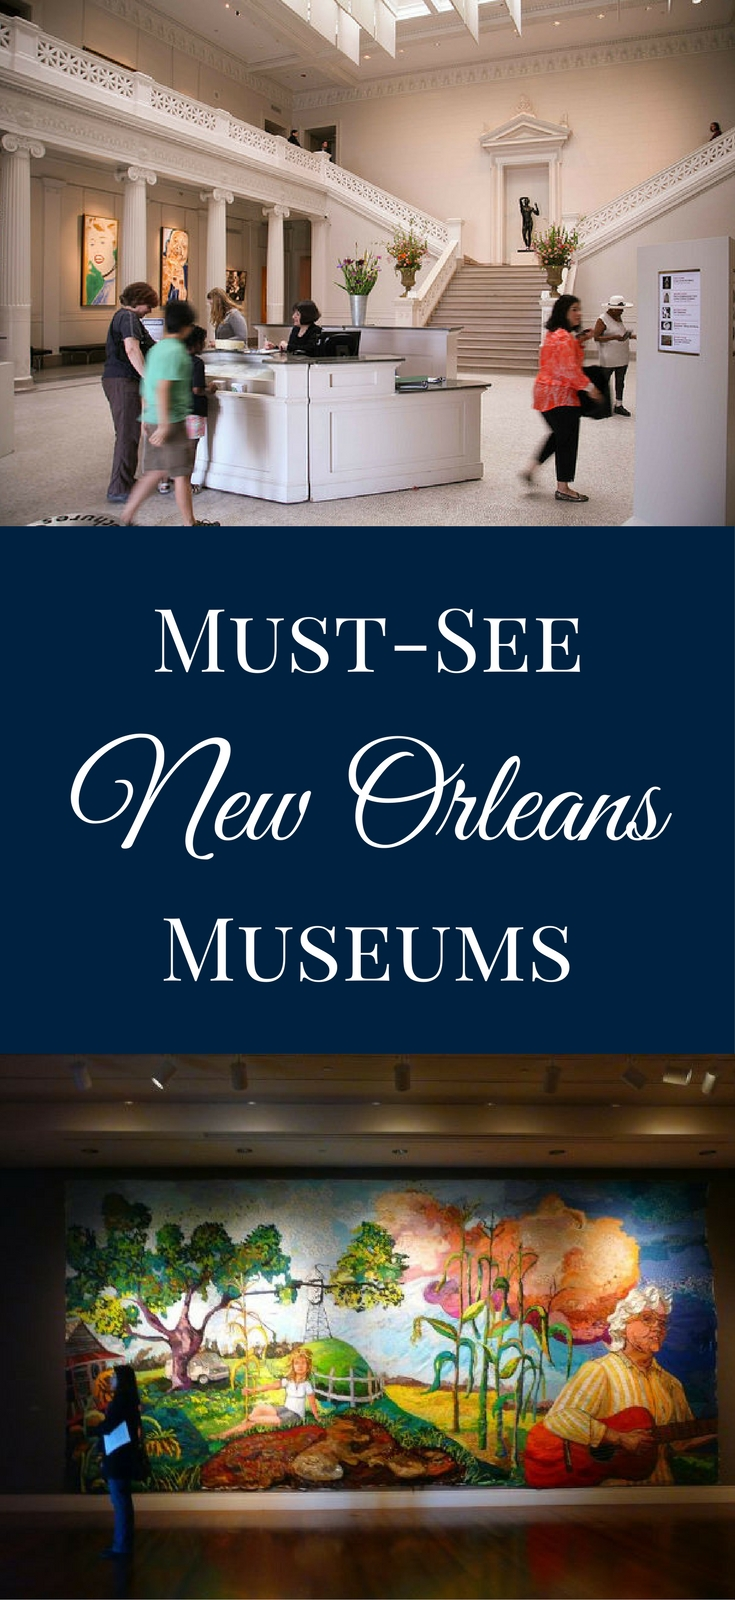 Each August, museums around New Orleans offer patrons special savings with New Orleans Museum Month. We think you'll agree that these museums are worth the trip.